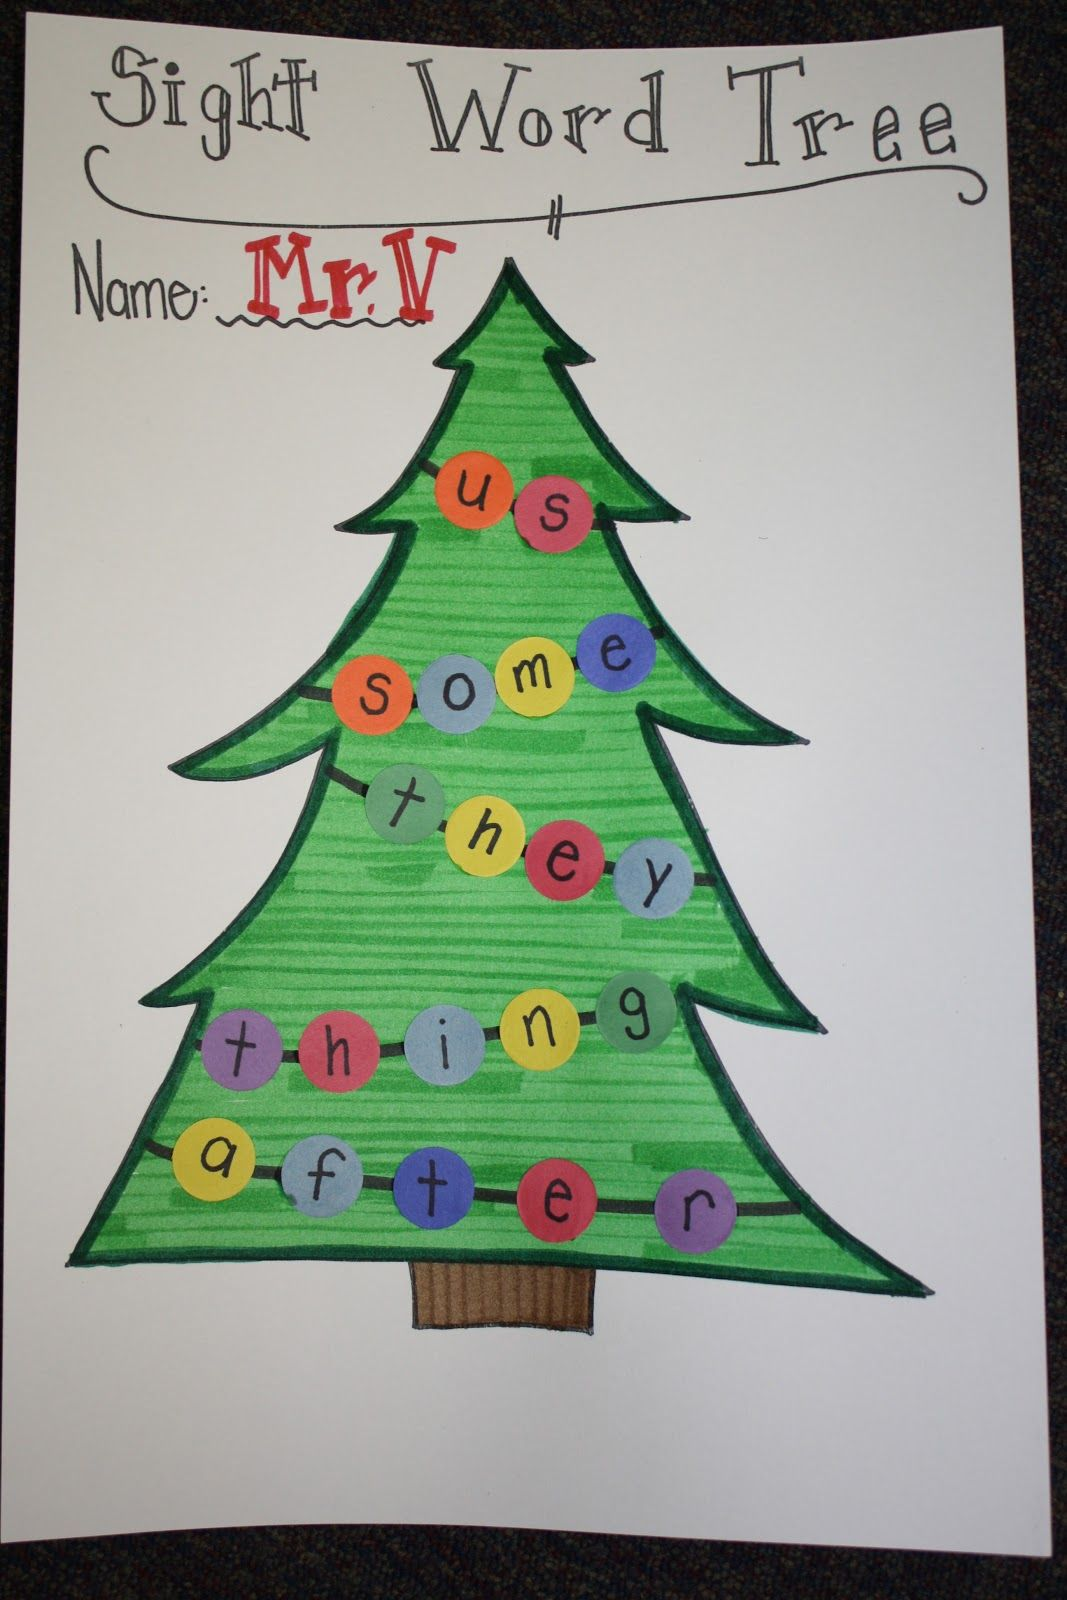 Sight Word Christmas Tree Could Do This With C S Name Mom Dad Etc For Family Word